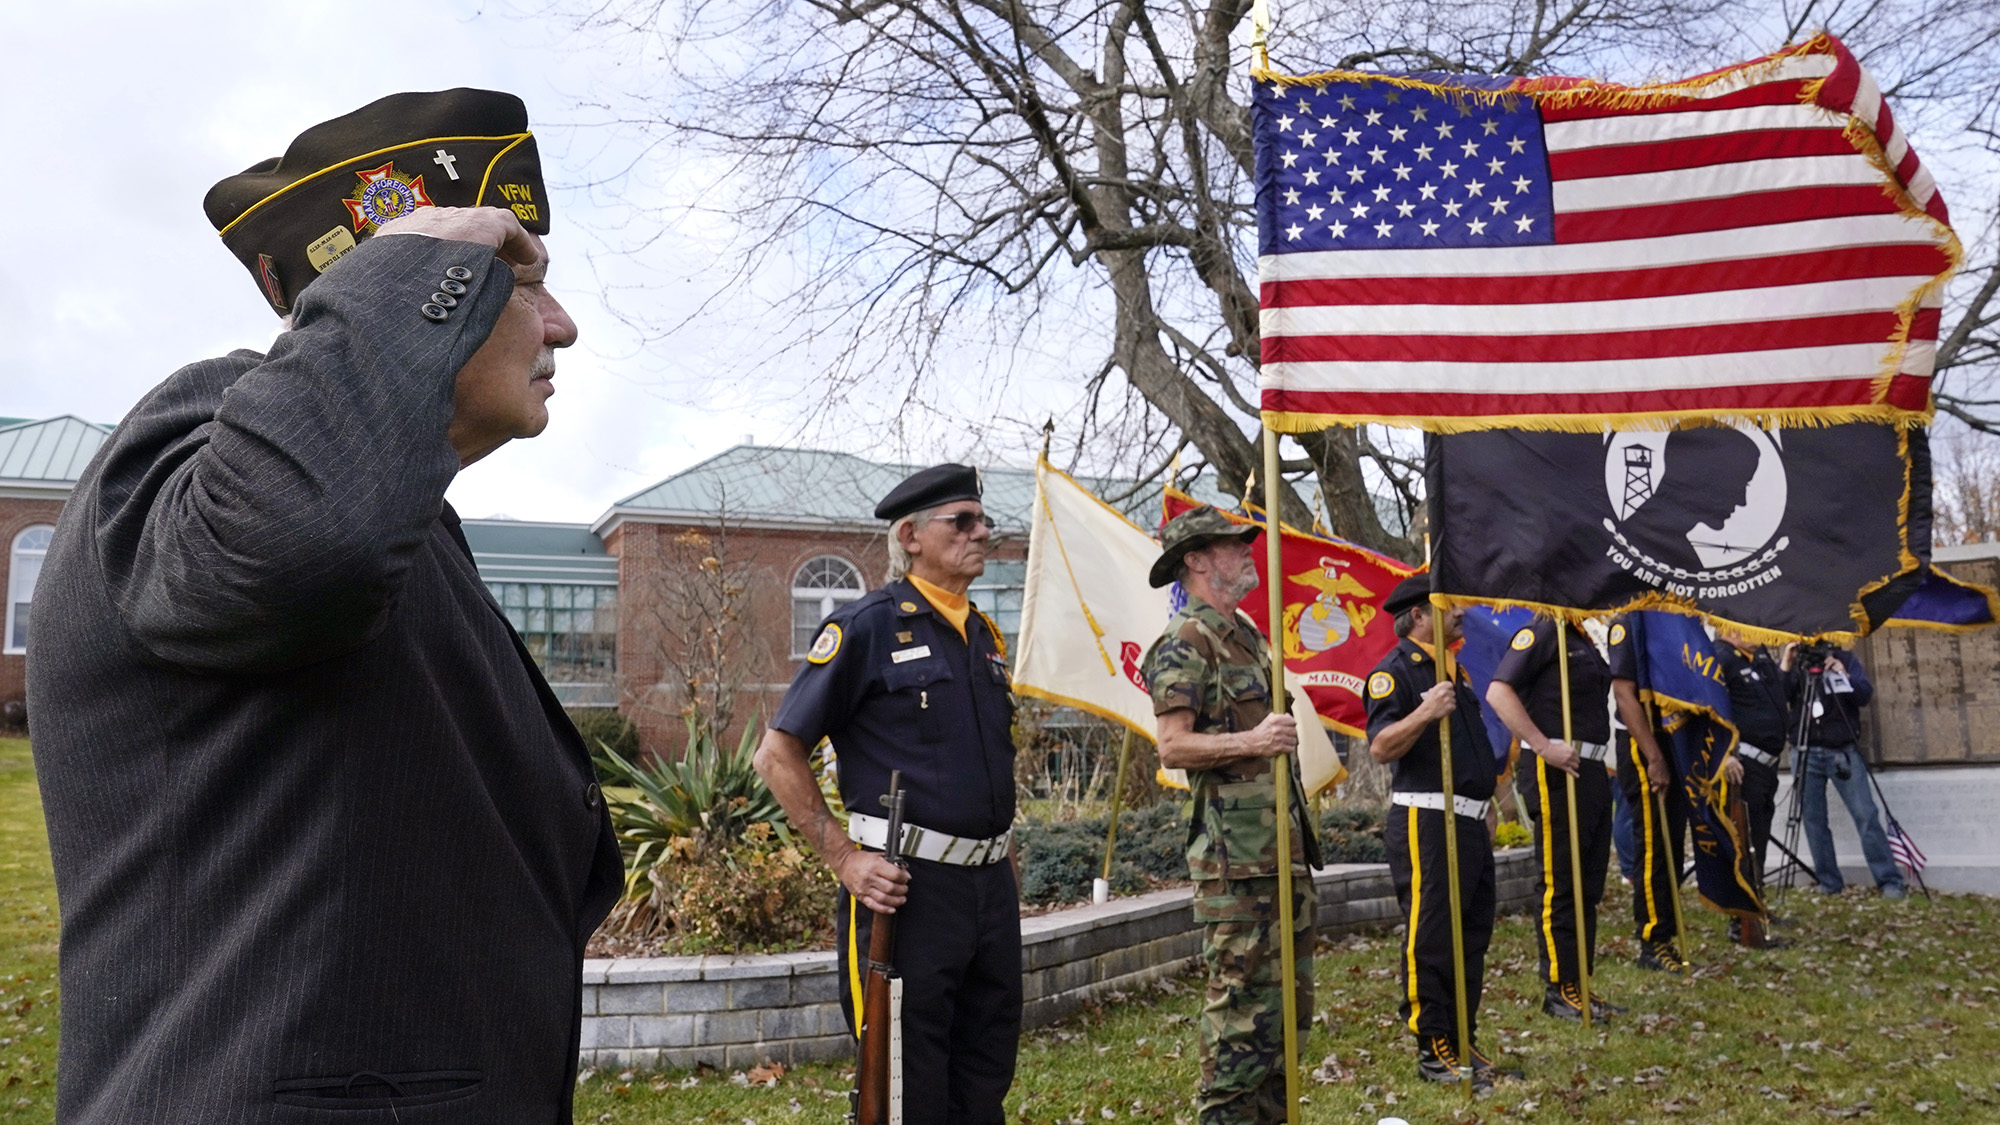 Chaplain Charles Andriolo, of VFW Post 1617, salutes during a Veterans Day ceremony, Wednesday, Nov. 11, 2020, in Derry, N.H. (Charles Krupa/AP)